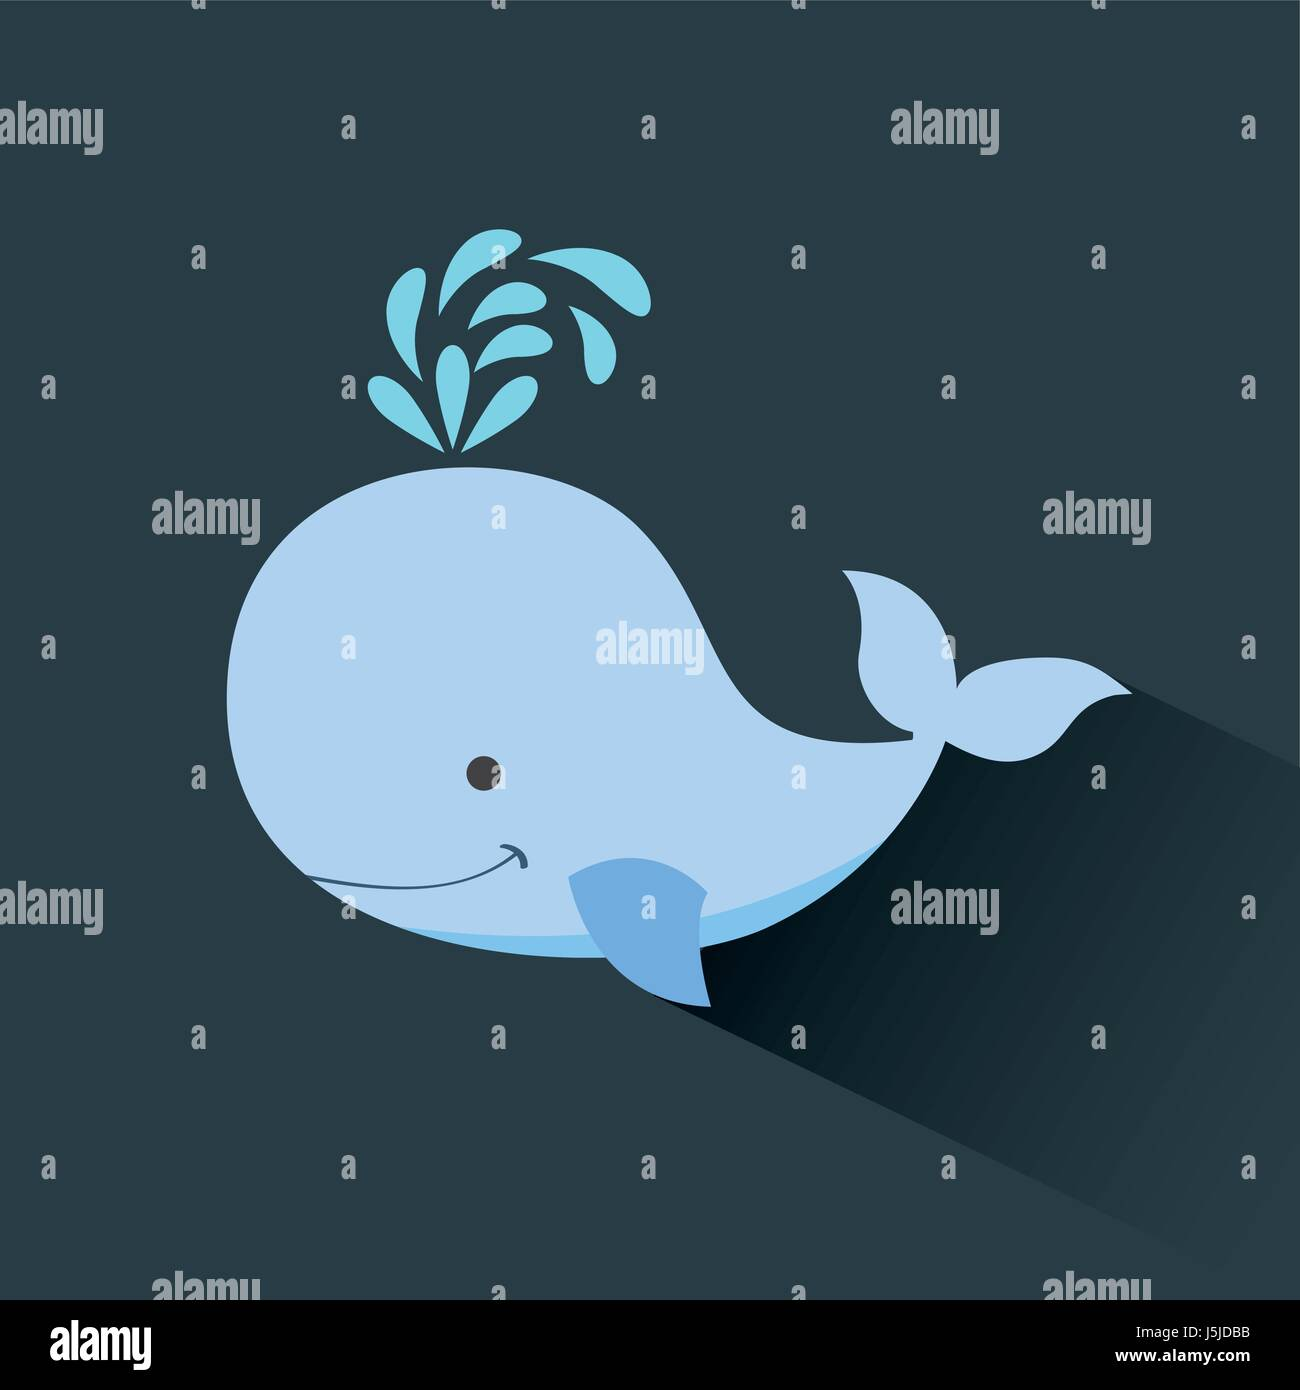 Cute whale in water cartoon isolated illustration stock photography - Cute Whale Cartoon Icon Image Stock Image